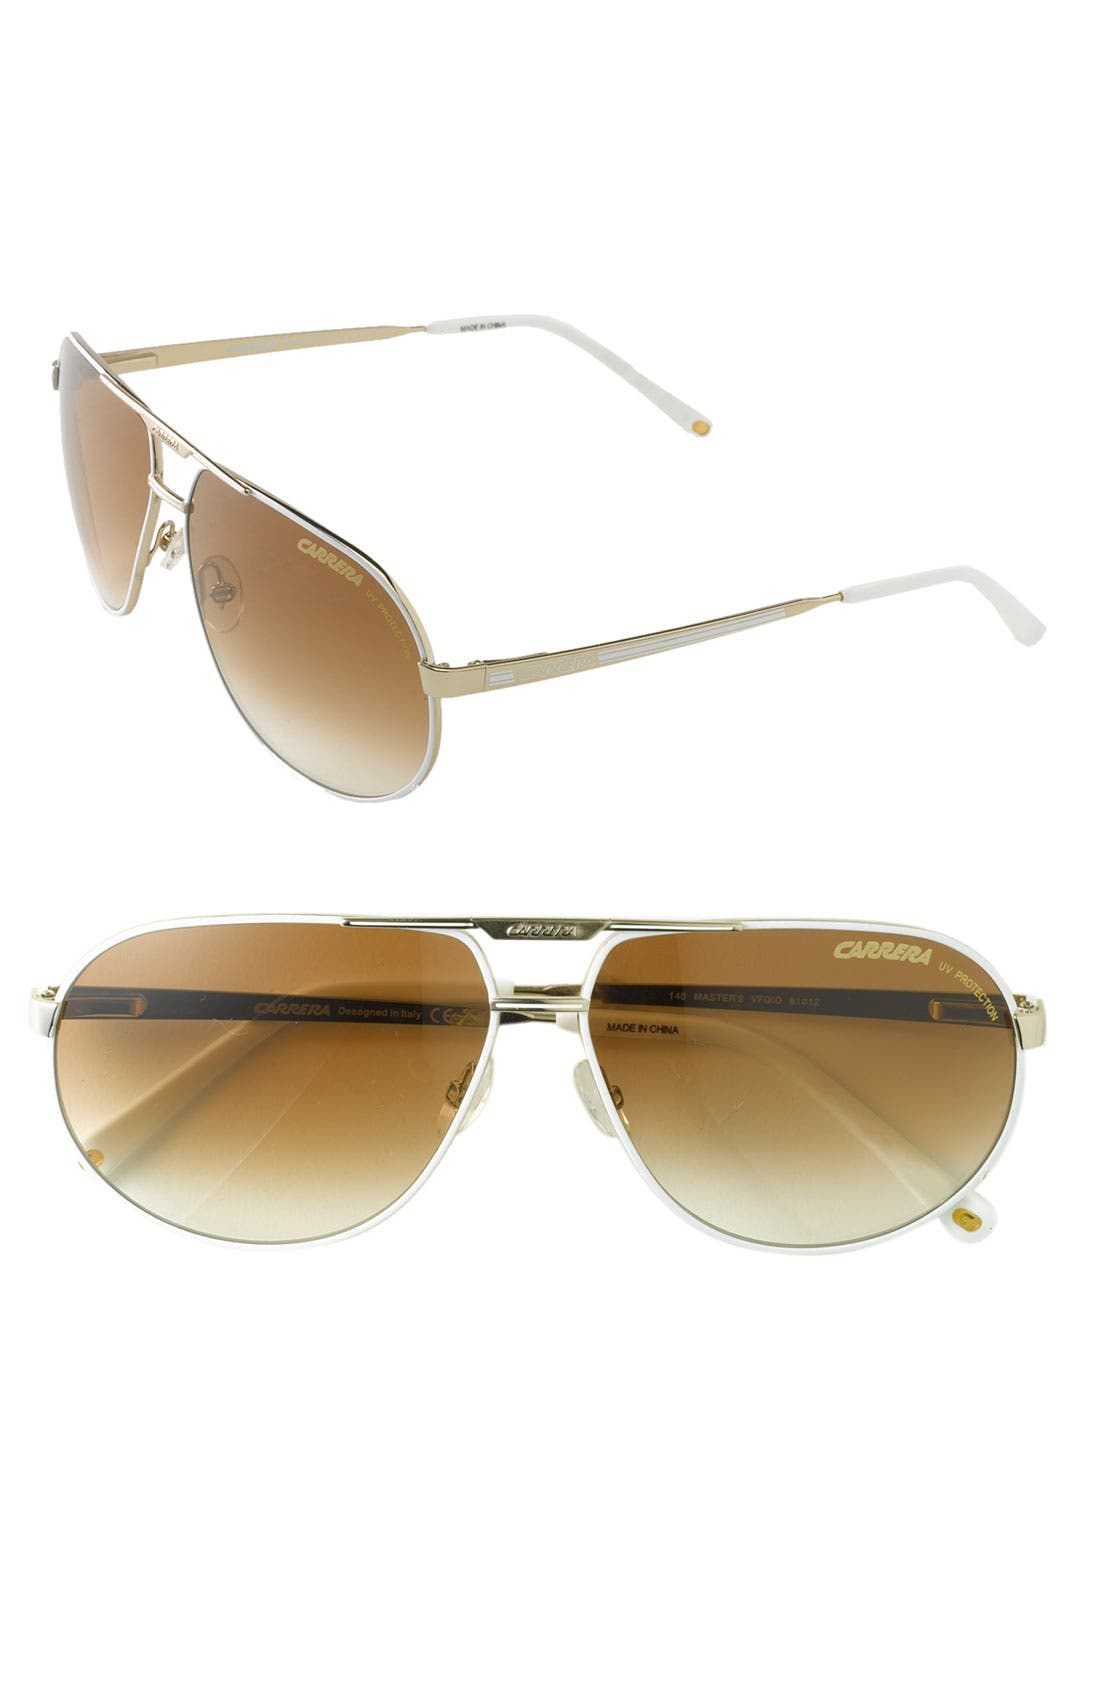 Alternate Image 1 Selected - Carrera Eyewear 'Master 2' 61mm Classic Metal Aviator Sunglasses